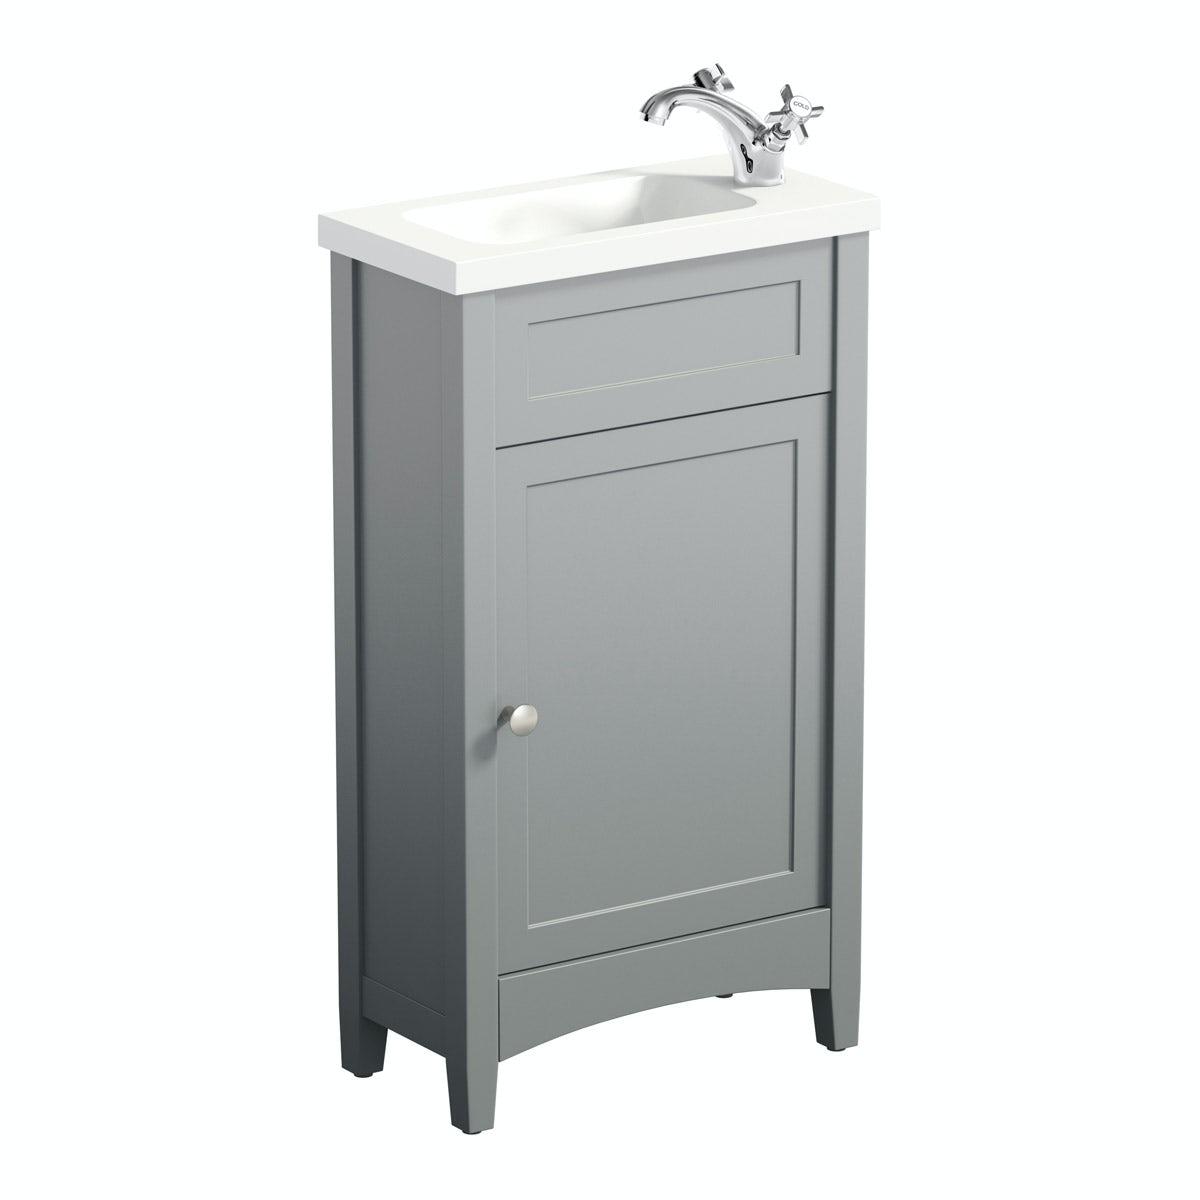 The Bath Co Camberley Grey Cloakroom Vanity With Resin